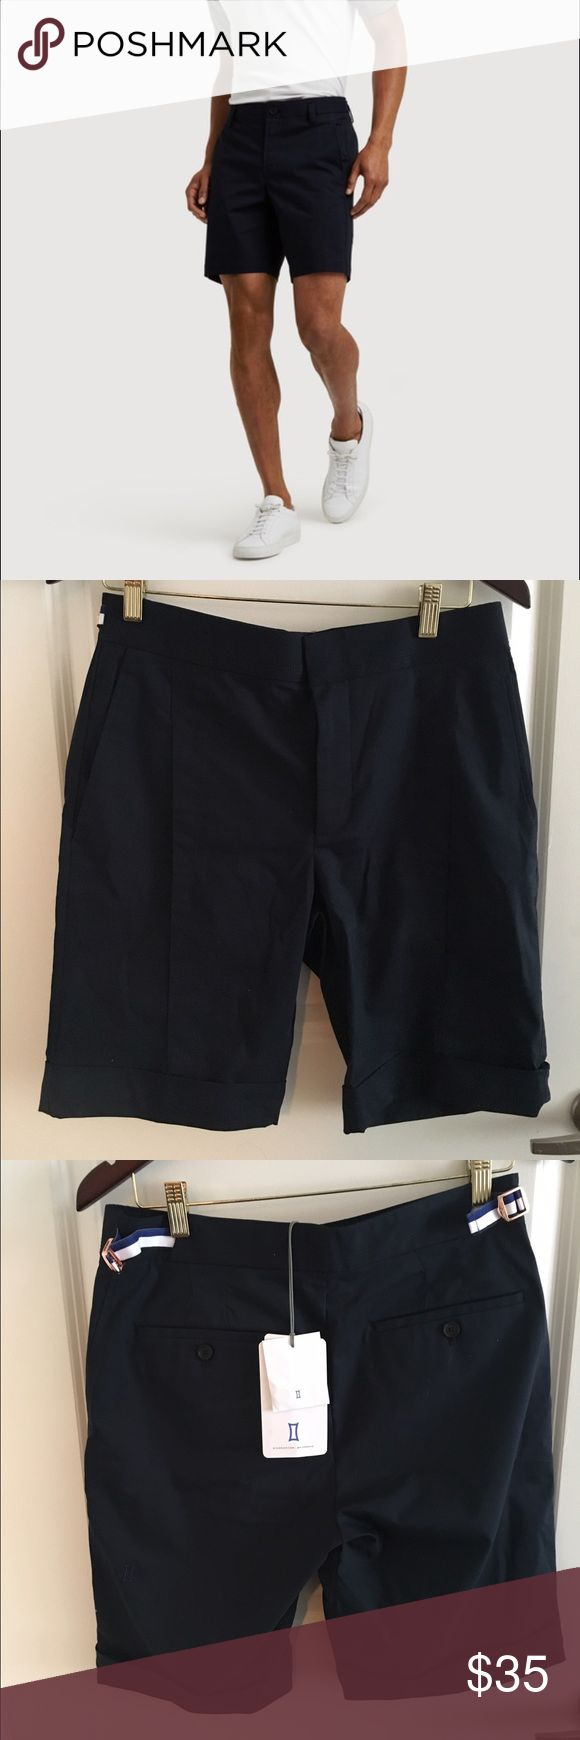 Men's navy Kit and Ace shorts These are new from the trending new brand Kit and Ace--known for their upscale sporty clothing. These shorts are great for the upcoming summer and have a great dressy casual, preppy vibe. The color is Navy and waist size is 32. Kit and Ace Shorts